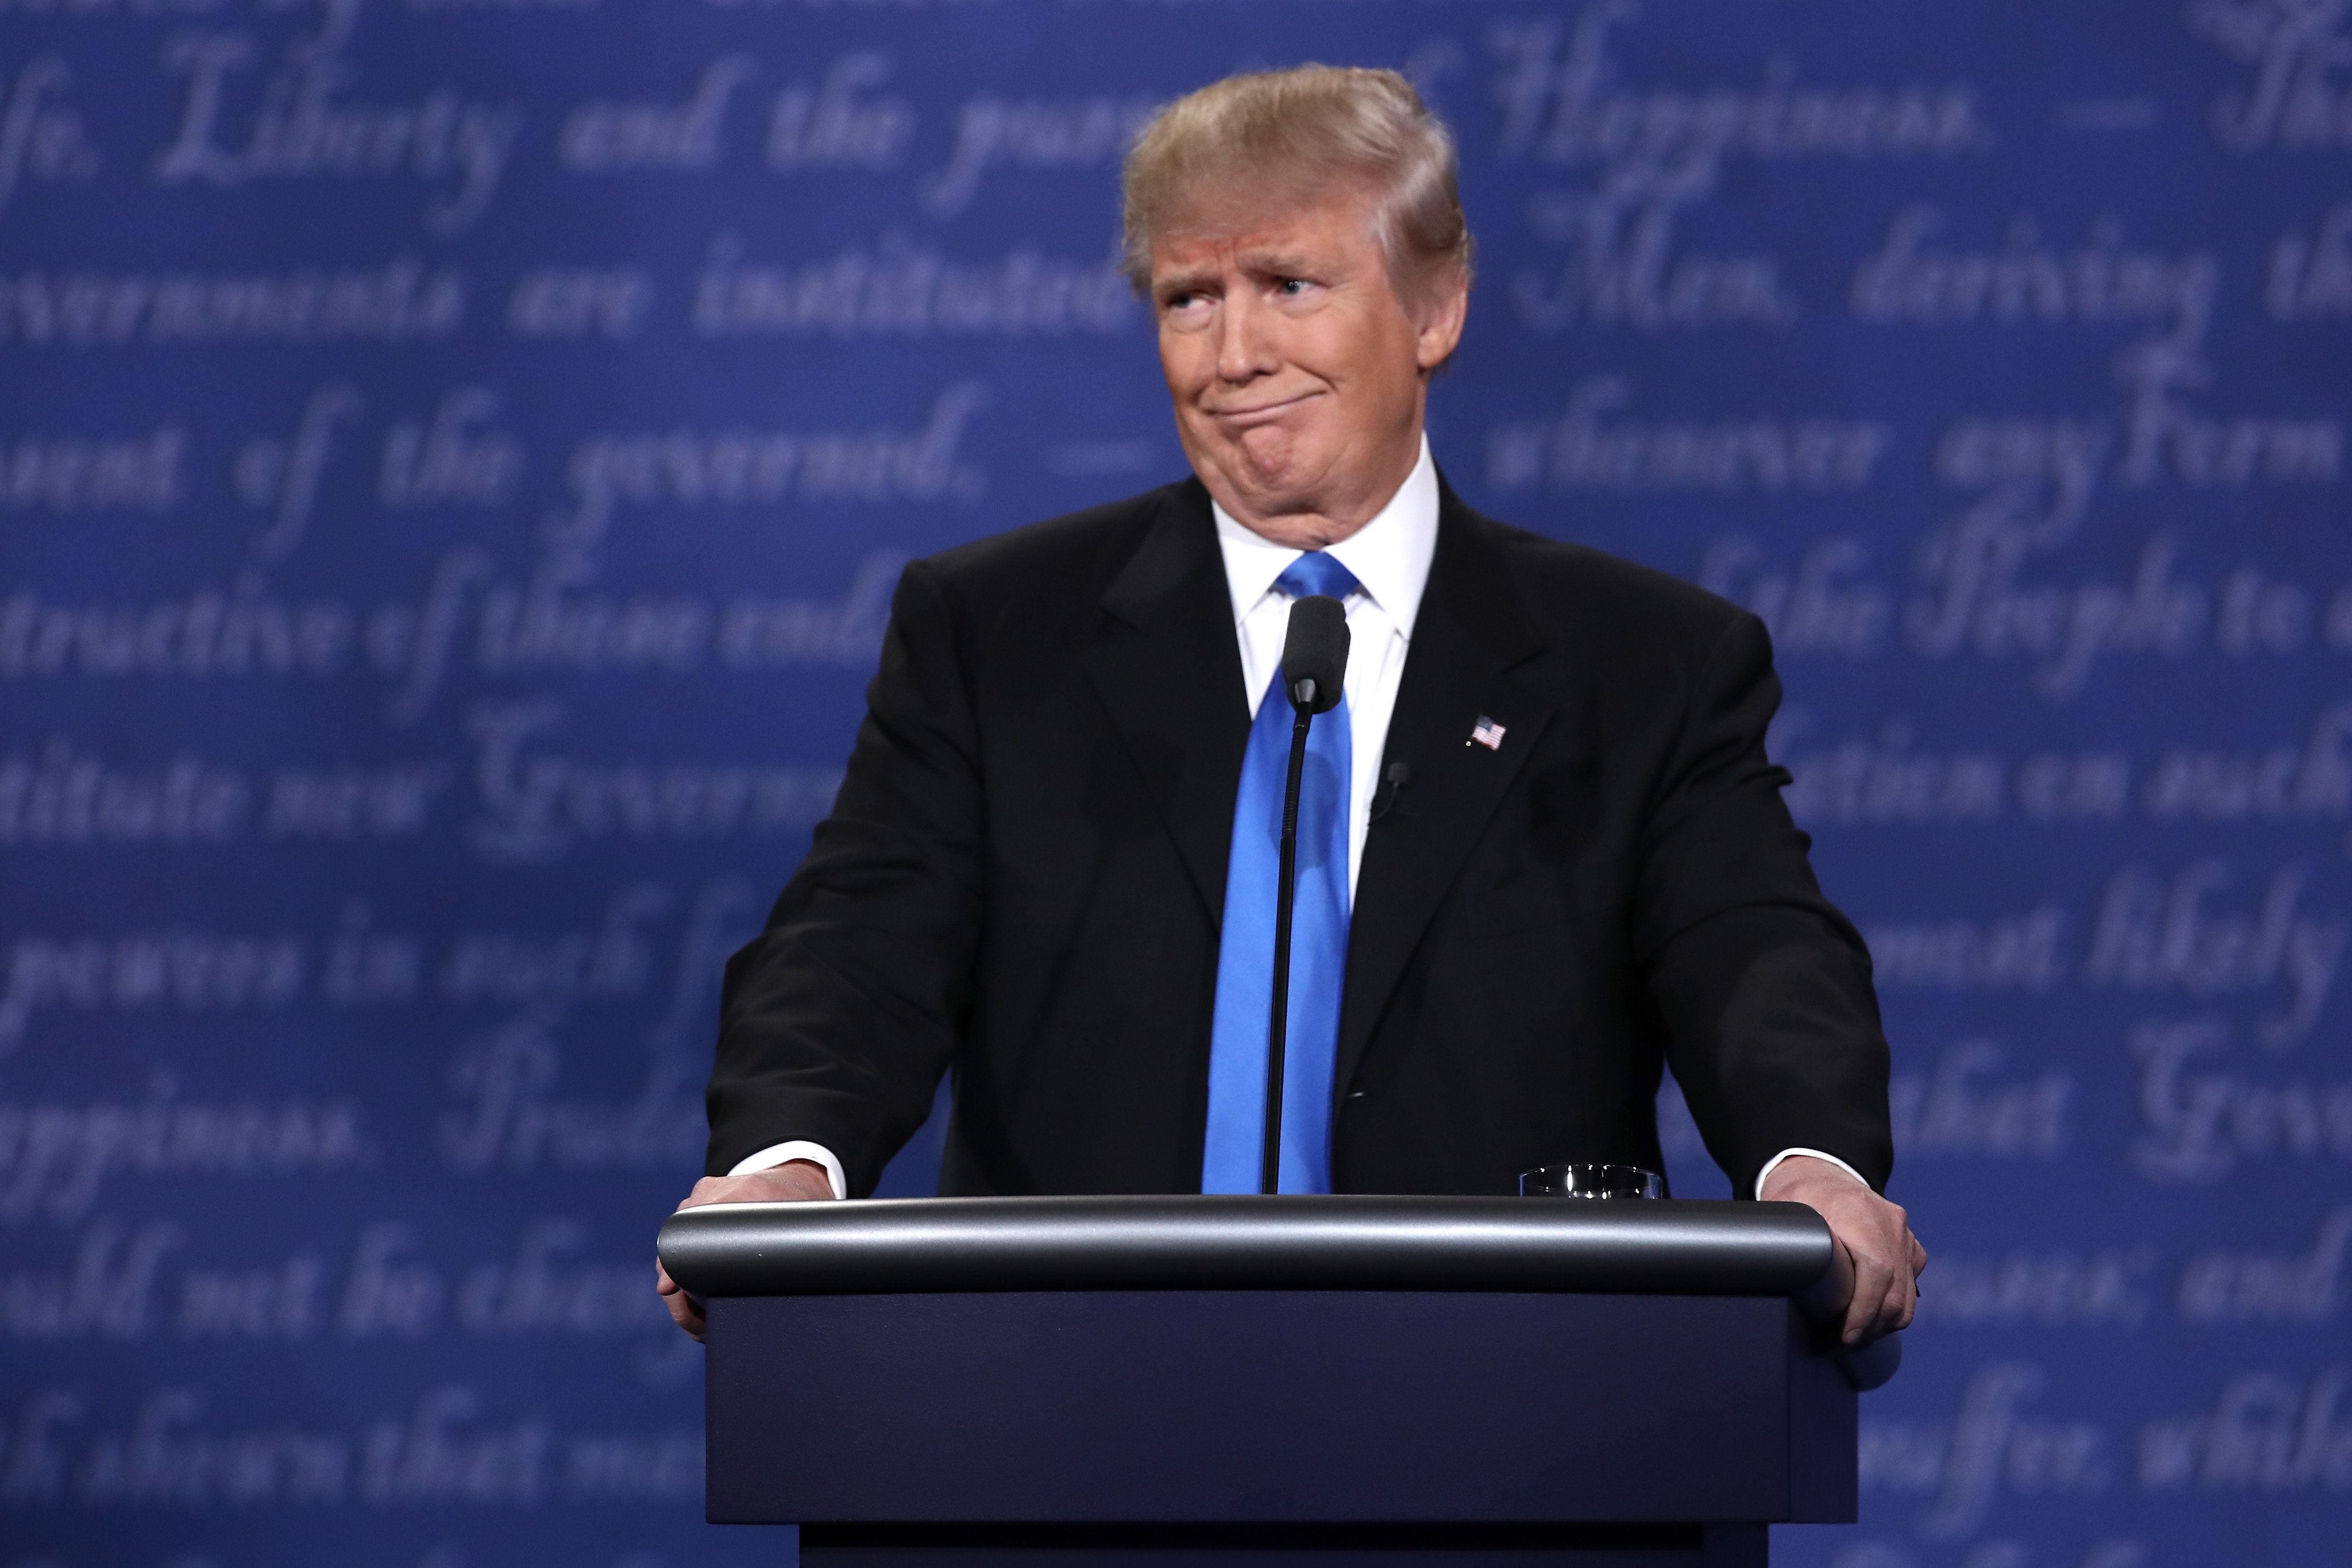 HEMPSTEAD, NY - SEPTEMBER 26:  Republican presidential nominee Donald Trump makes a face during the Presidential Debate at Hofstra University on September 26, 2016 in Hempstead, New York.  The first of four debates for the 2016 Election, three Presidential and one Vice Presidential, is moderated by NBC's Lester Holt.  (Photo by Win McNamee/Getty Images)